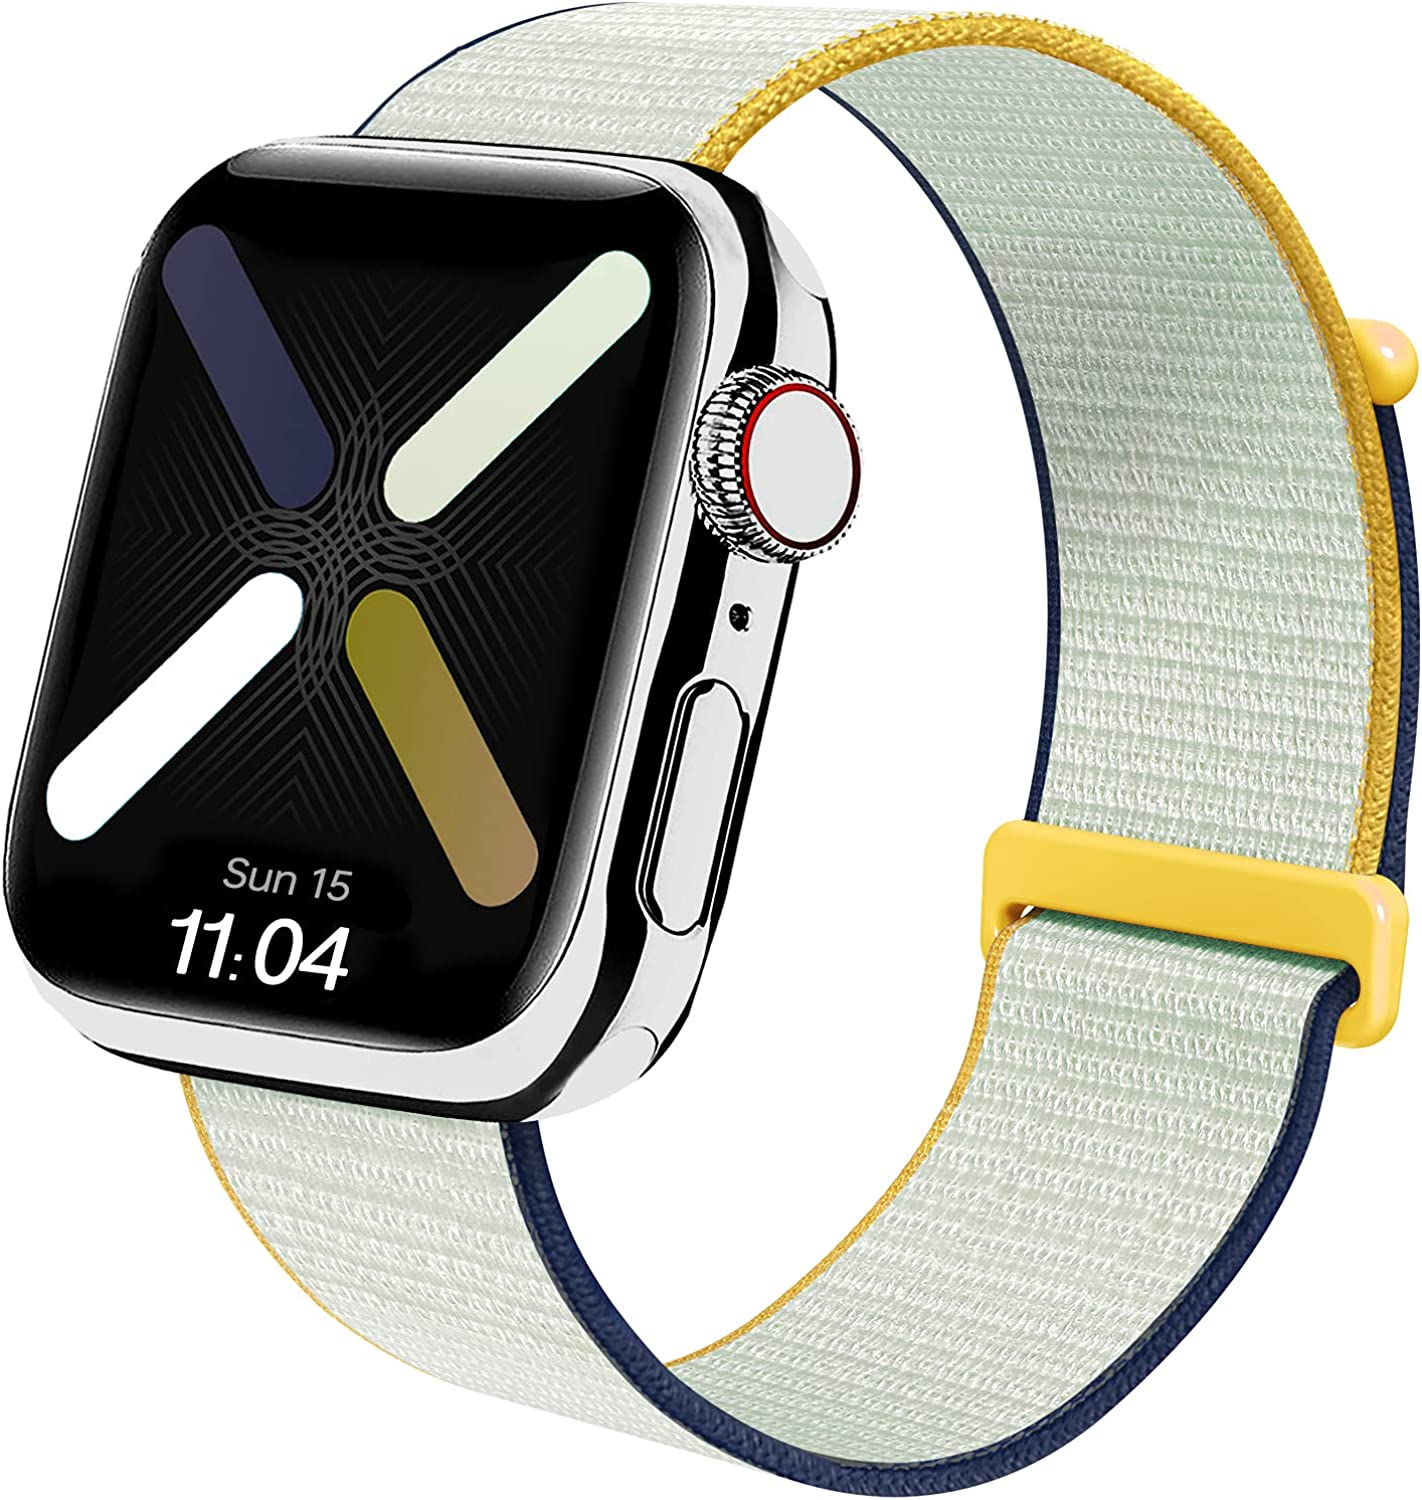 Nylon Band Compatible with Apple Watch Bands 38mm 40mm 42mm 44m, Soft Braided Stretchy Woven Solo Loop for Women Men Replacement Sport Bands Compatible with iWatch Series SE/6/5/4/3/2/1